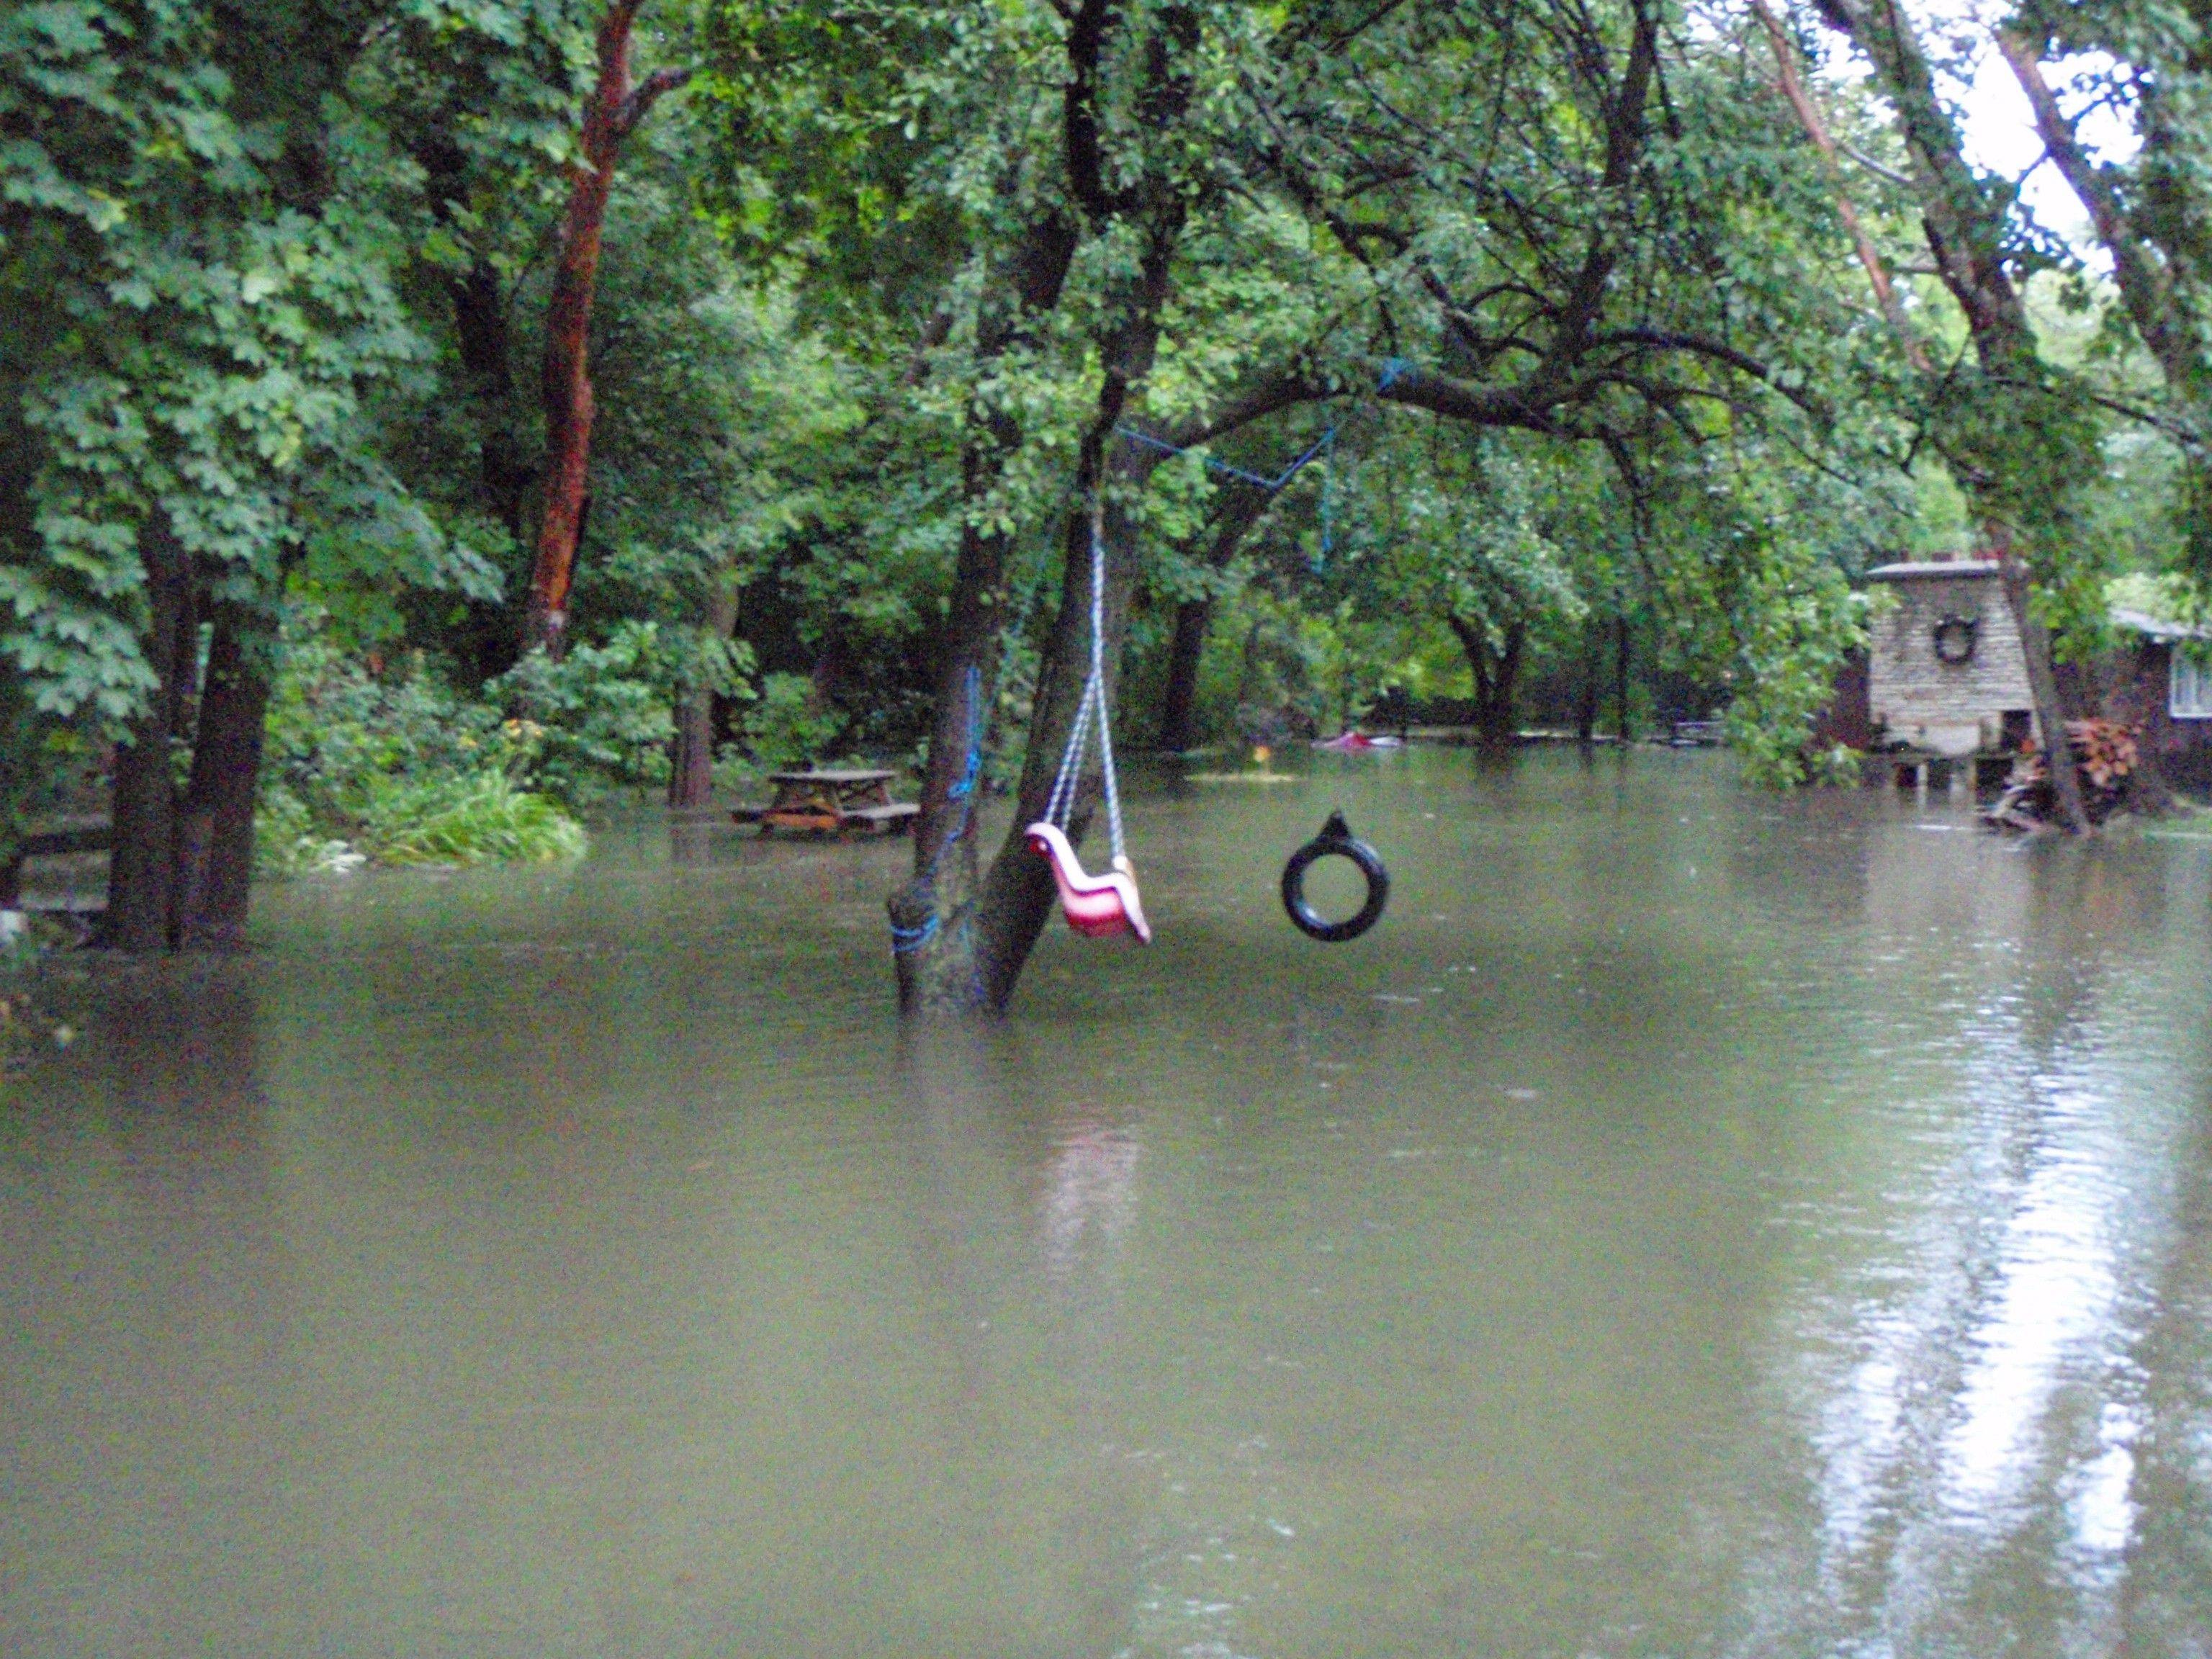 The Madden family's backyard along McDonald Creek in Prospect Heights was completely flooded as of Saturday morning.